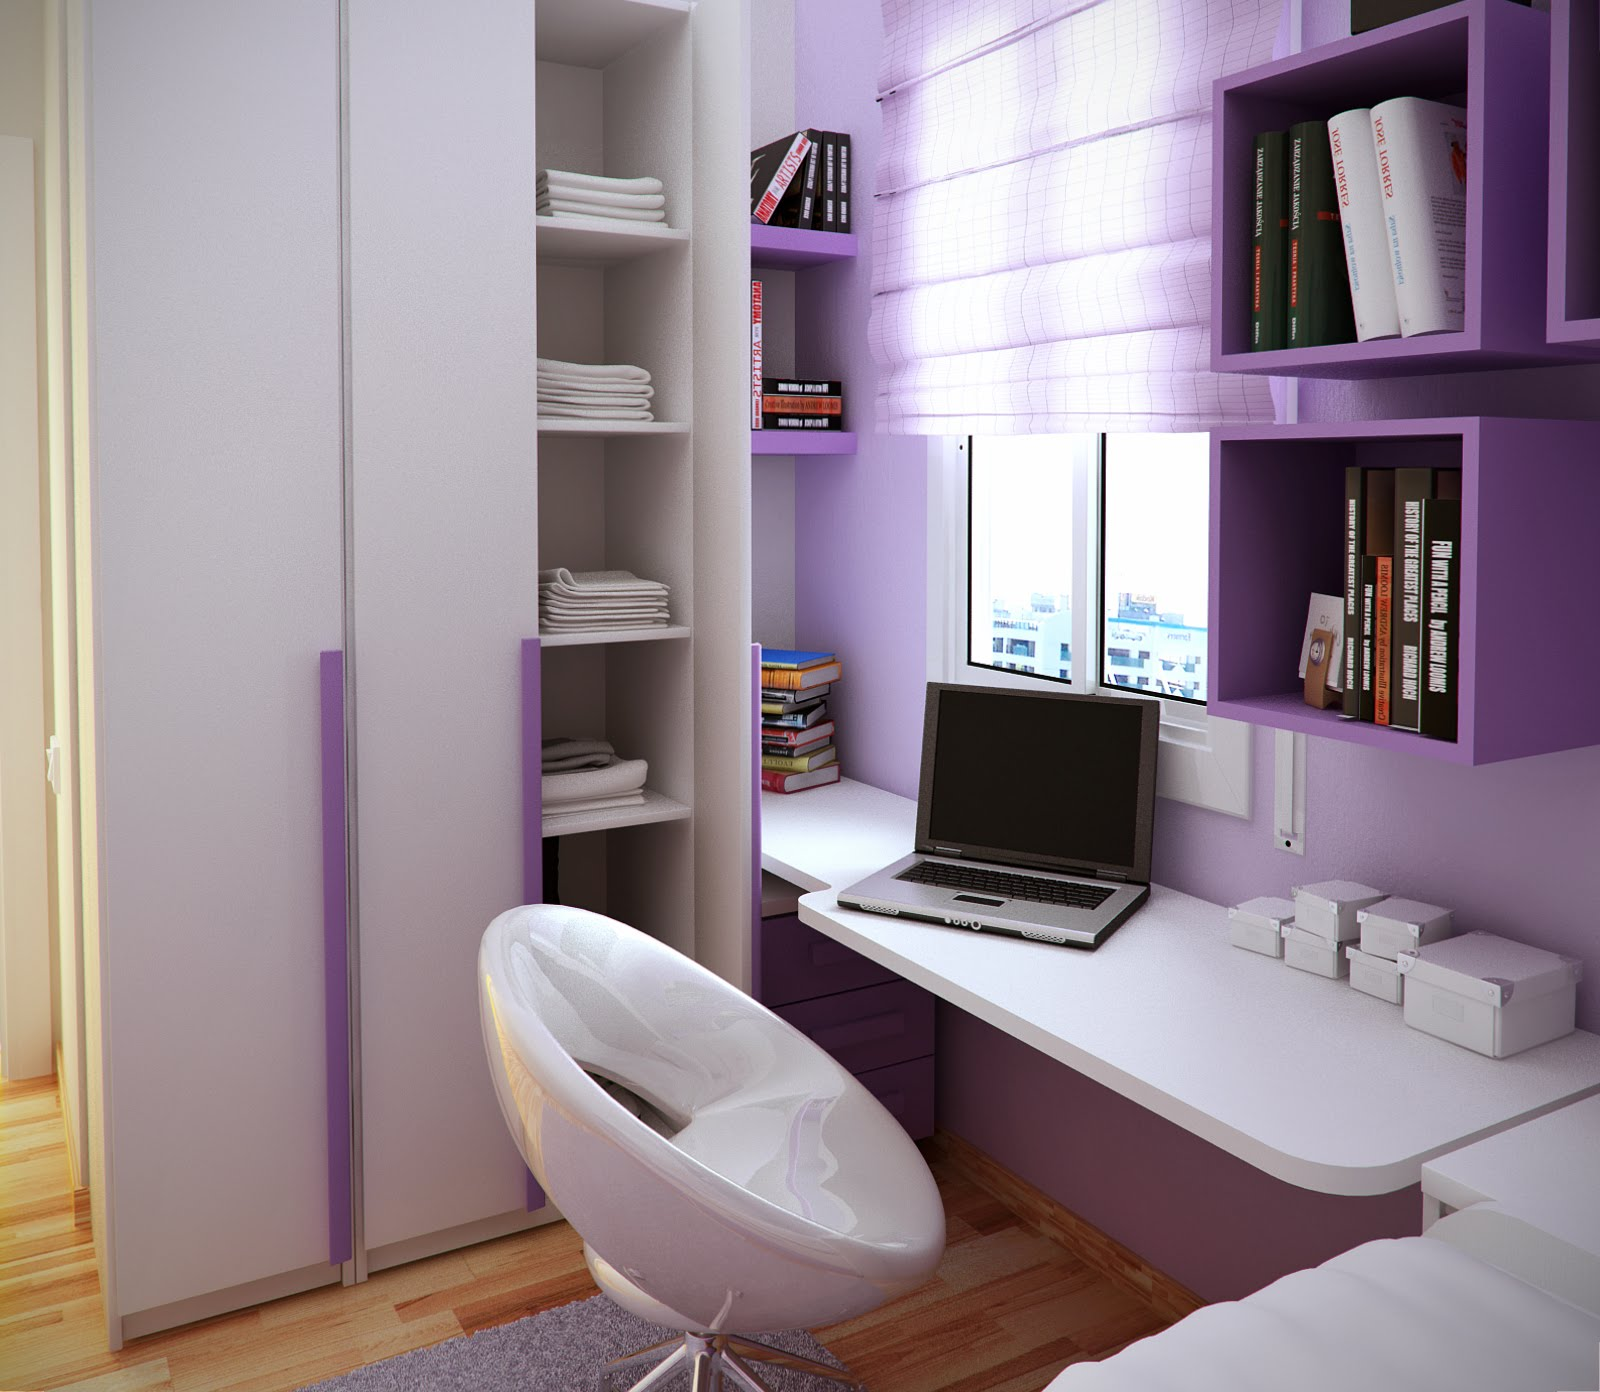 Small Floorspace Kids Rooms on Room Ideas For Small Rooms  id=61949